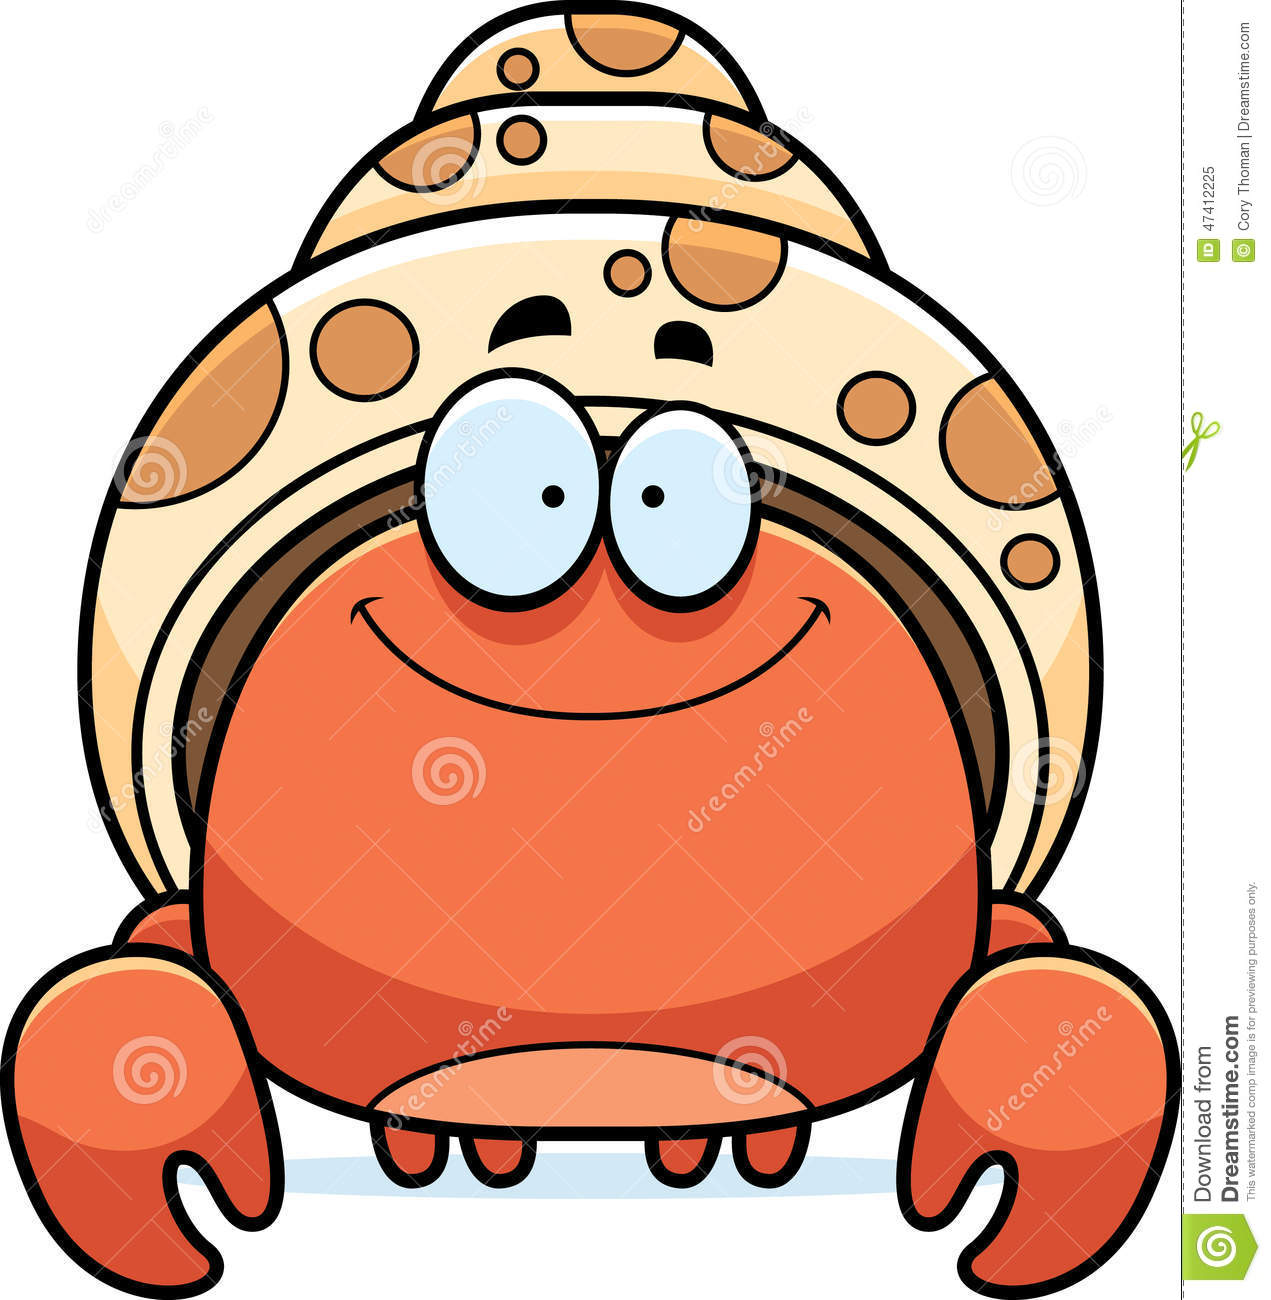 Hermit Crab Cartoon Stock Photo, Picture And Royalty Free Image ...